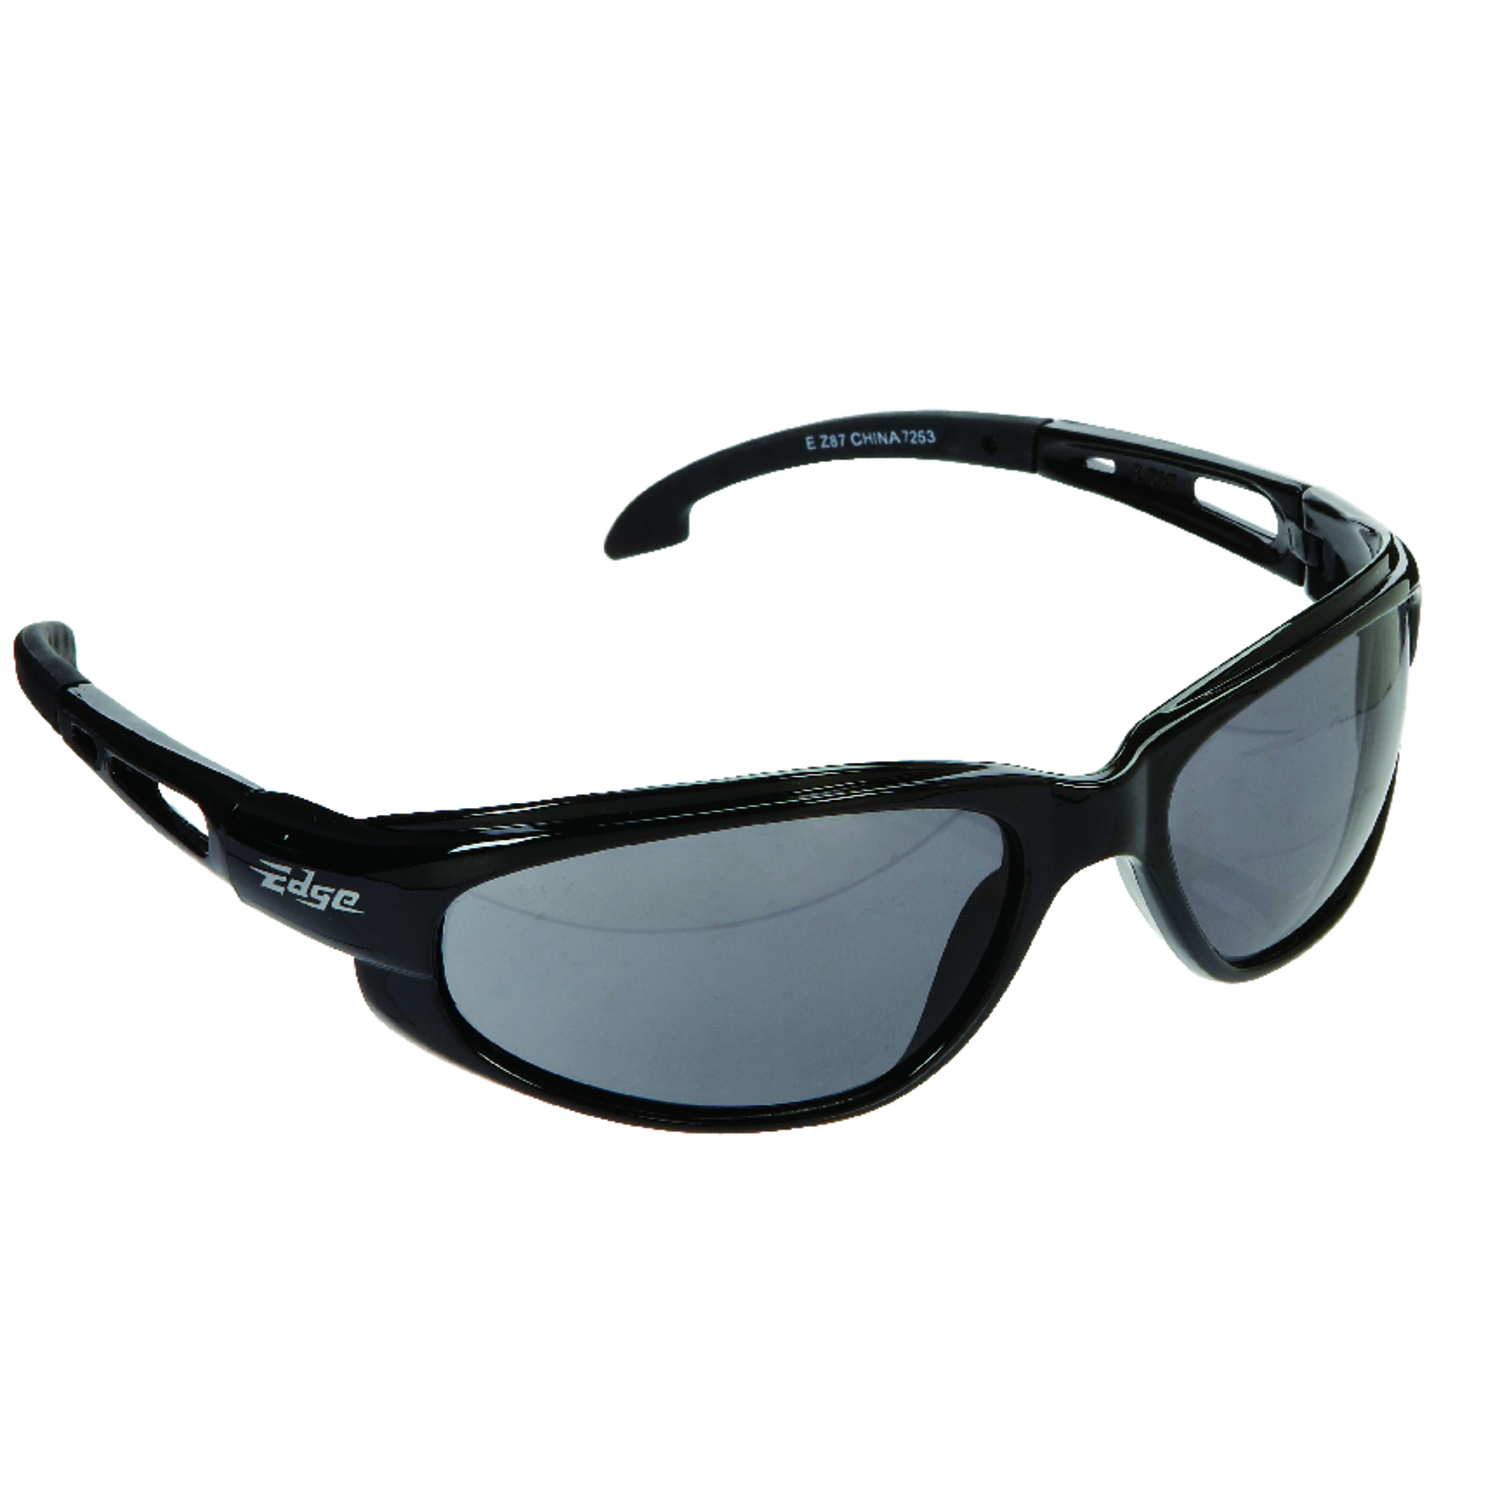 Edge Eyewear  Dakura  Safety Glasses  Black  1  Black